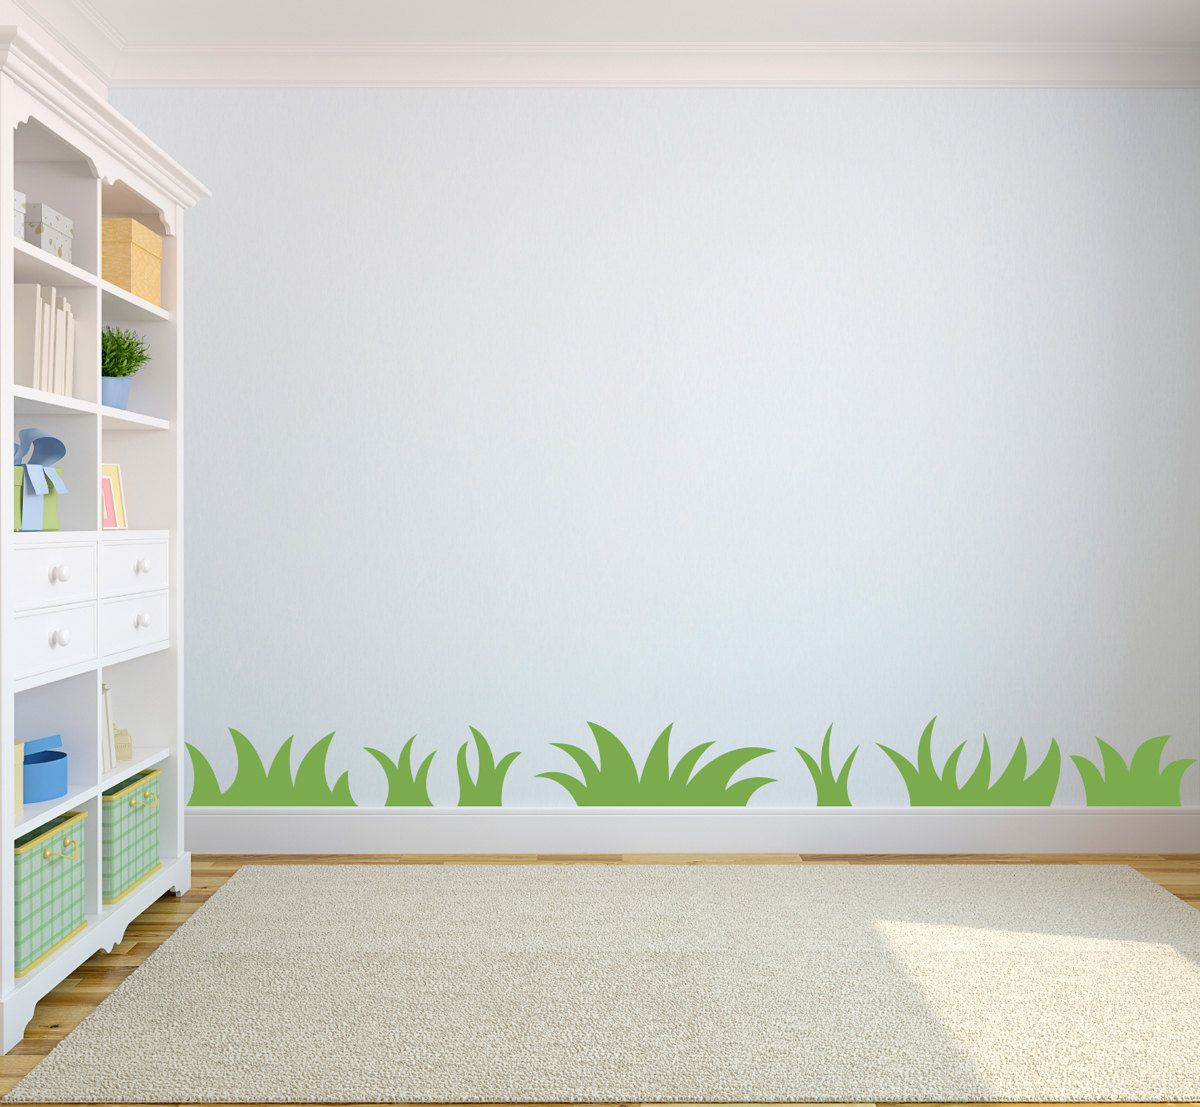 Grass wall decal nature wall art for kids bedroom set for Bedroom wall decor